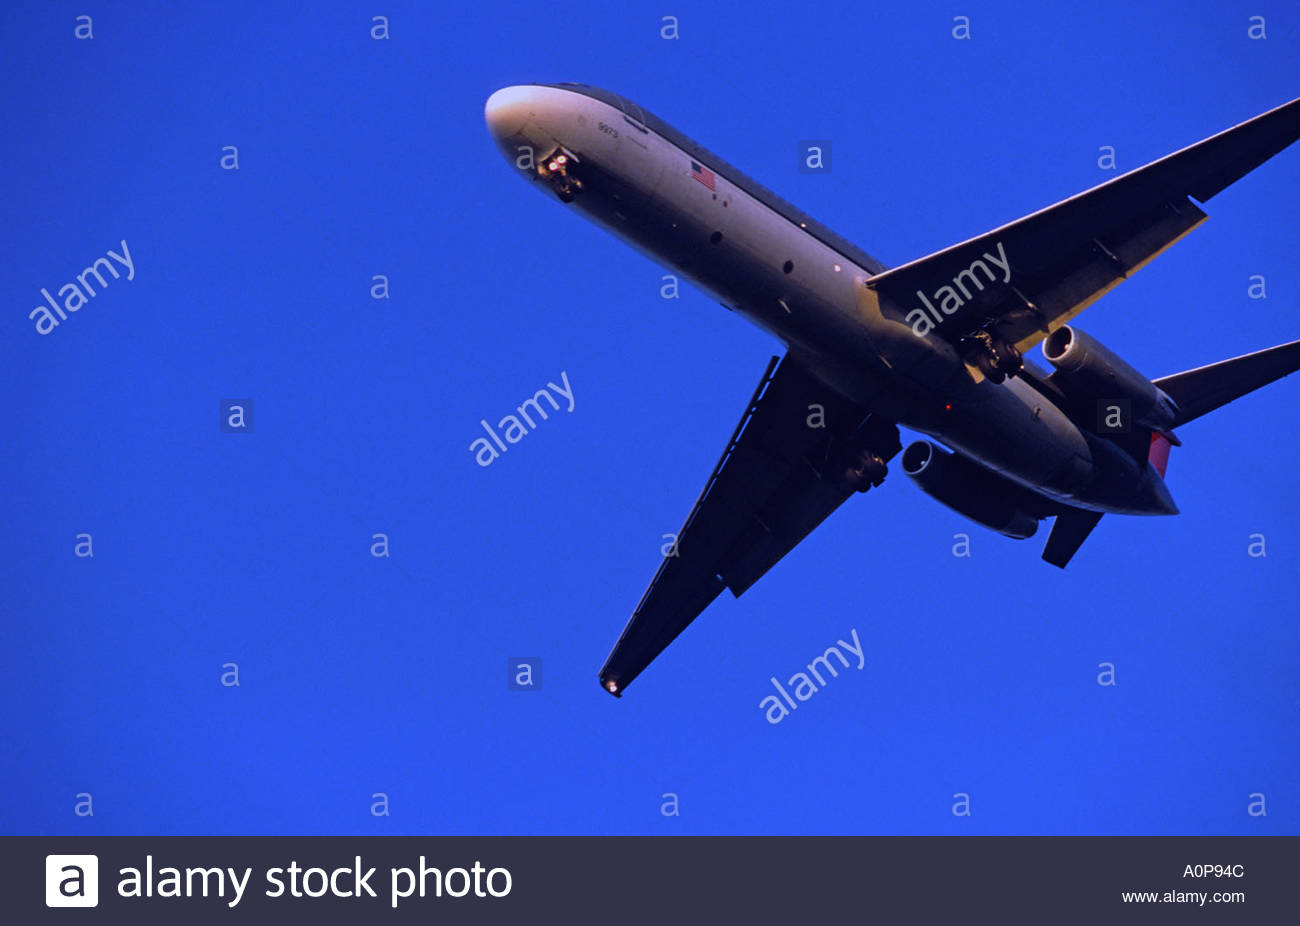 Commercial airliner on approach - Stock Image